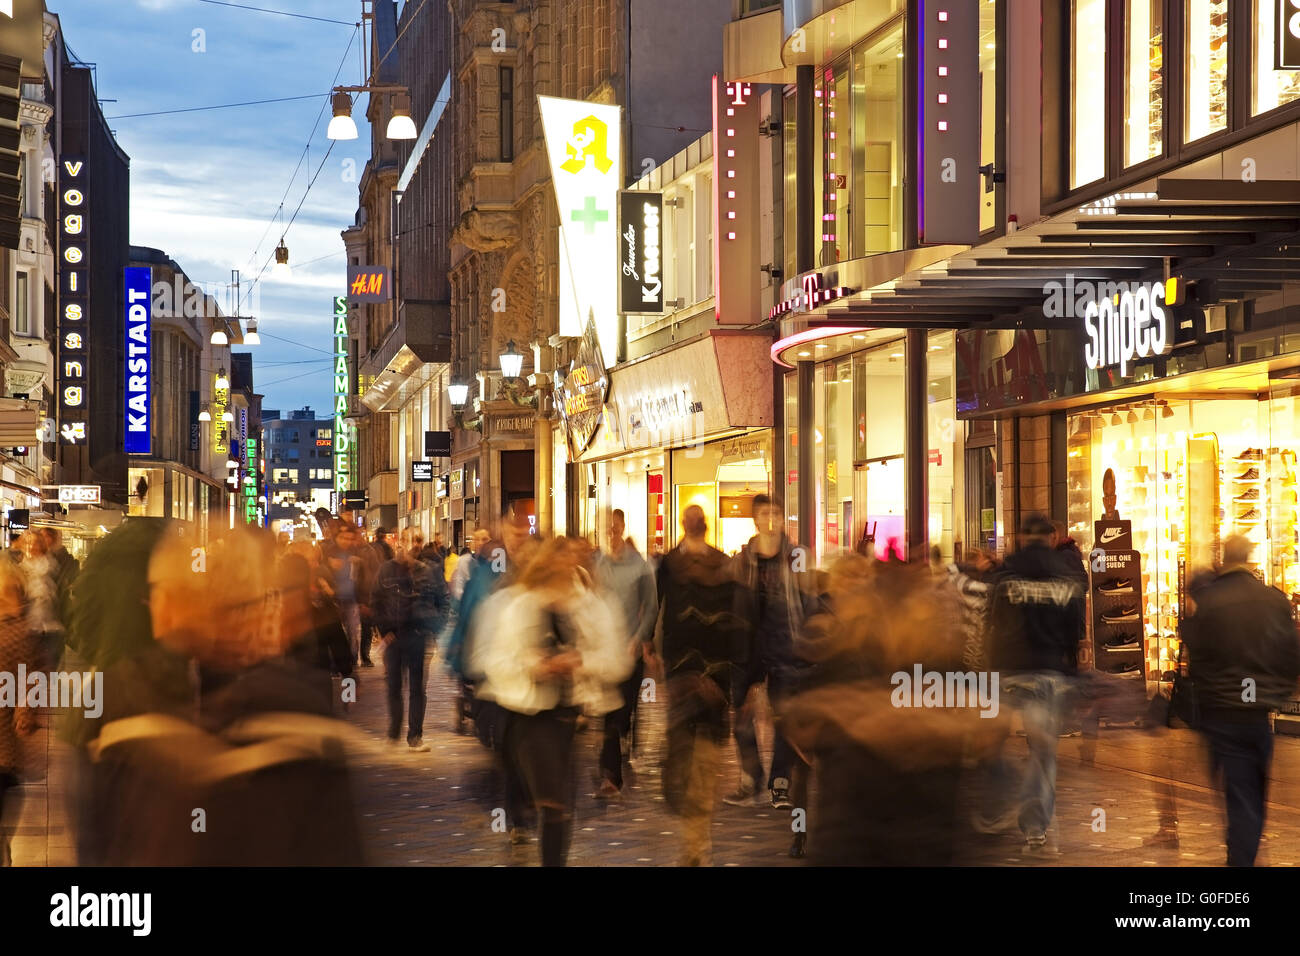 Rush hour on the Westenhellweg, Dortmund, Ruhr area, Germany Stock Photo